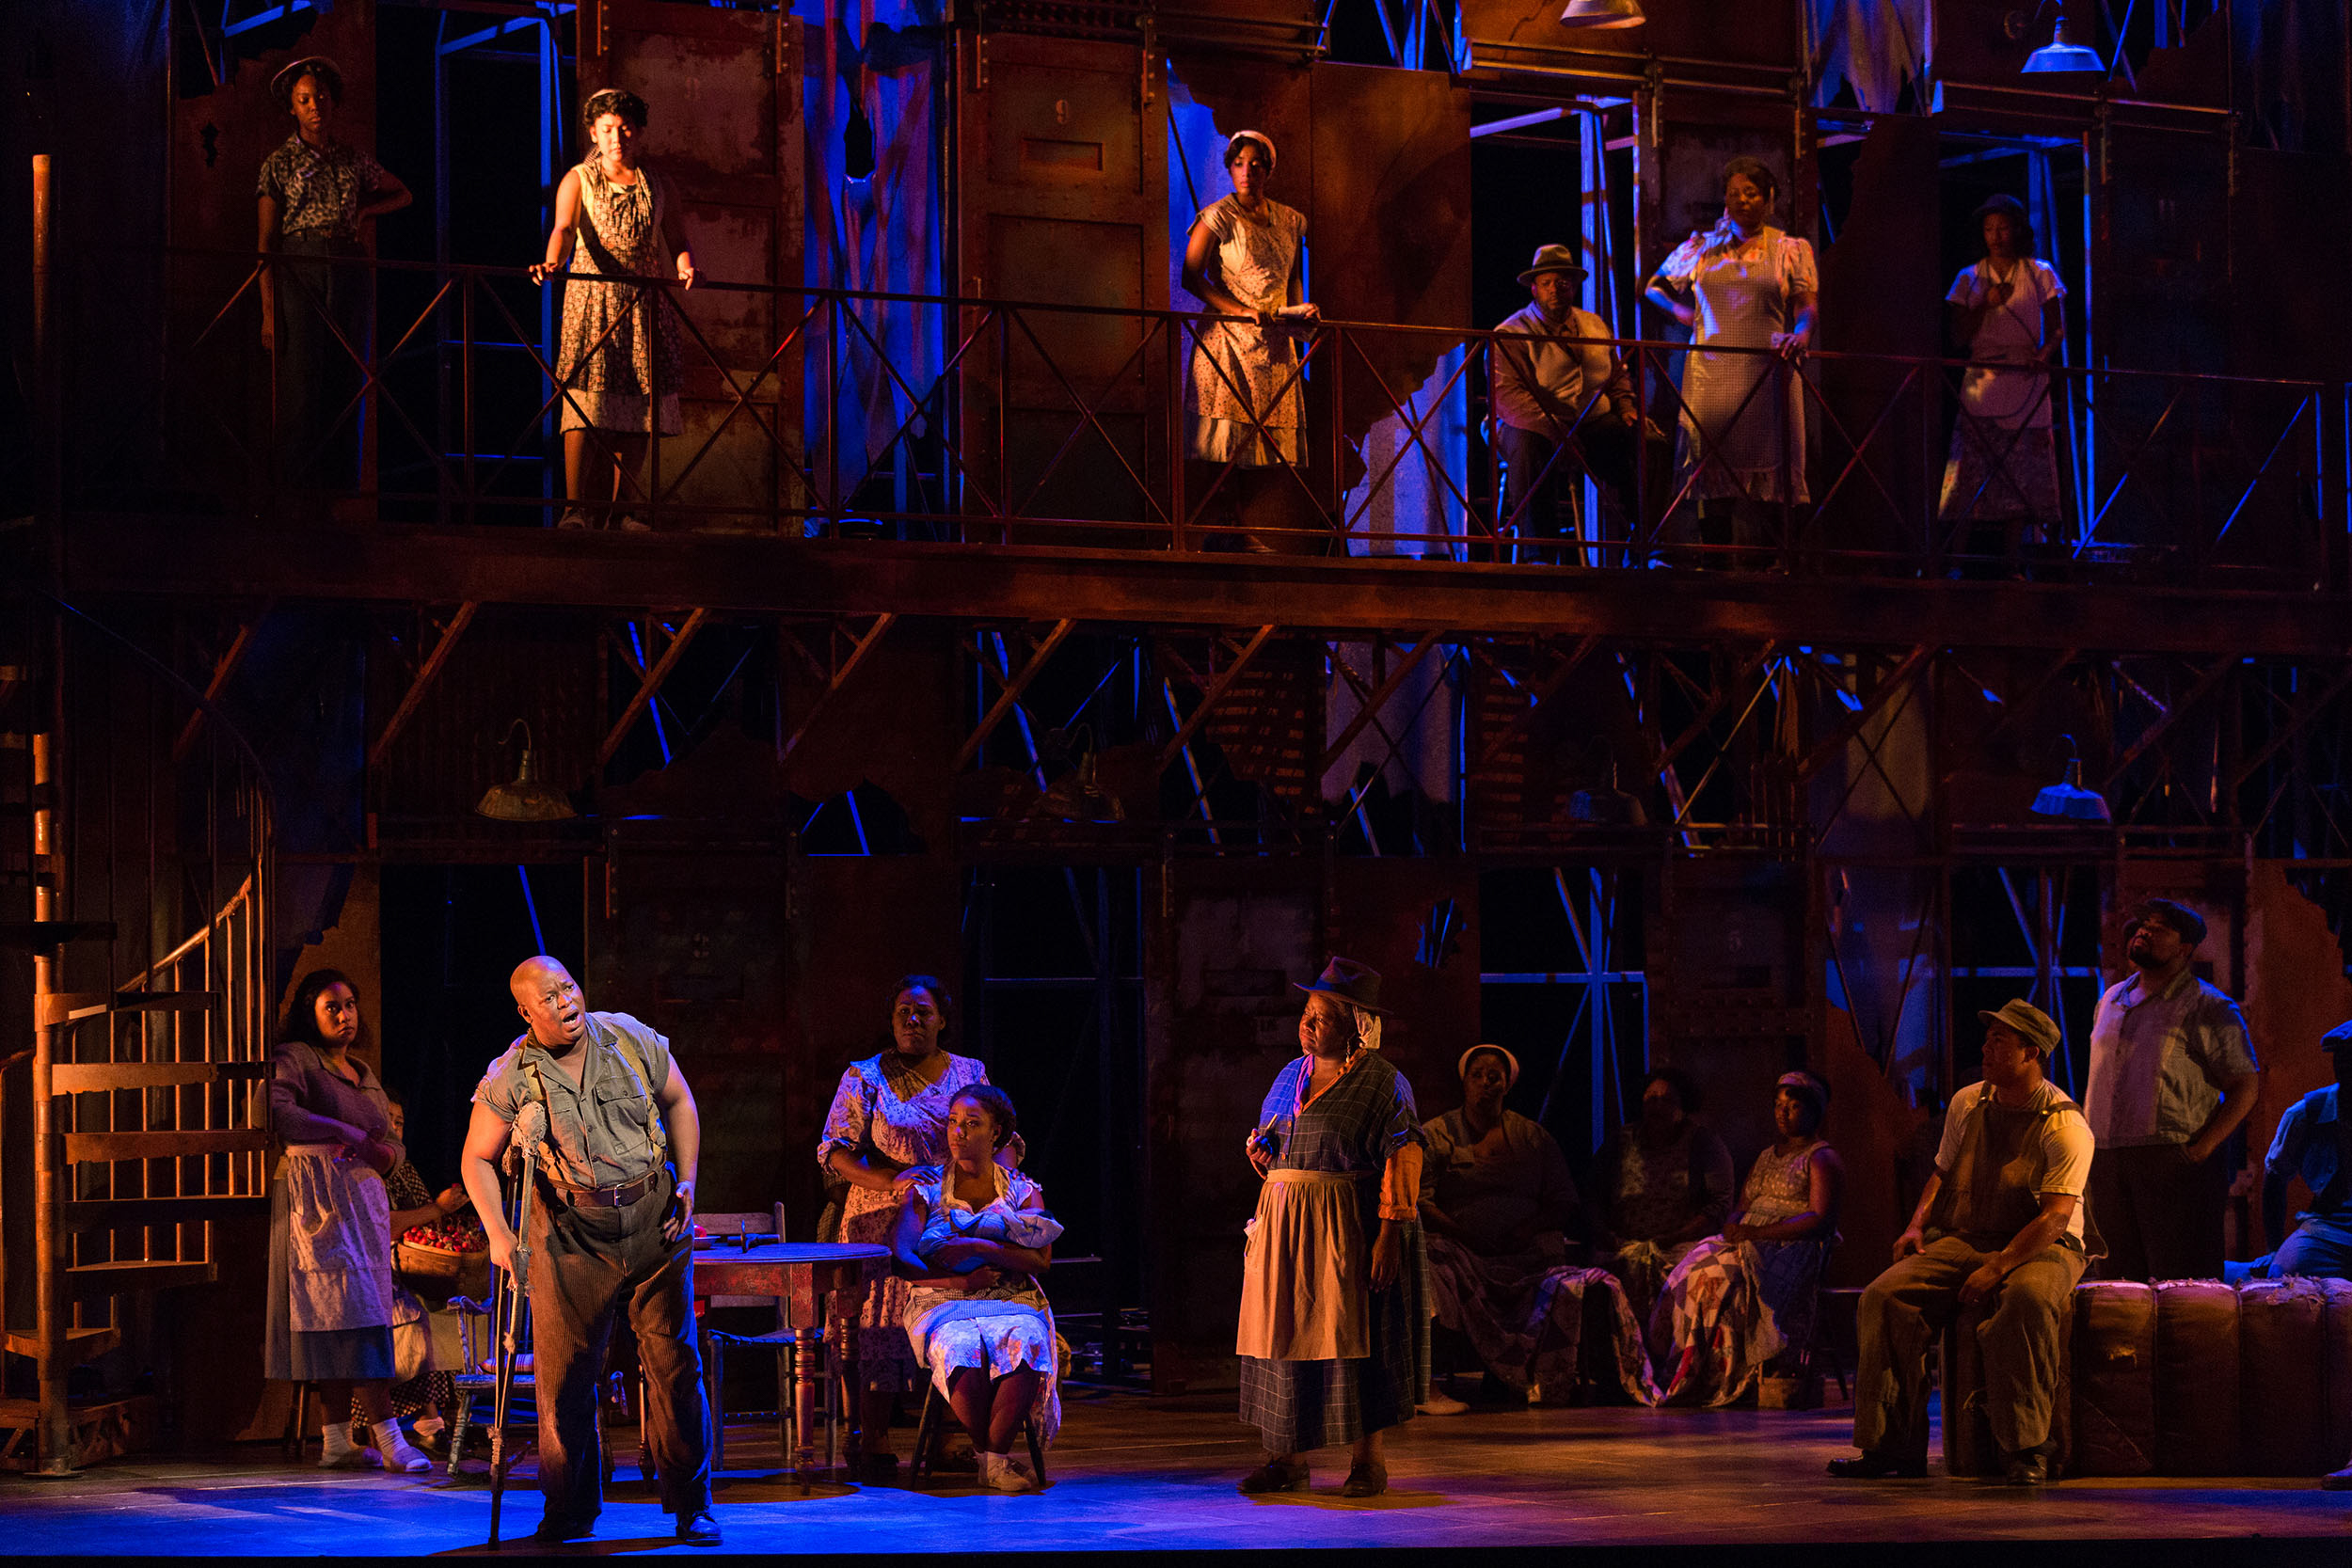 Musa Ngqungwana as Porgy (left) in The Glimmerglass Festival's 2017 production of The Gershwins'  Porgy and Bess .